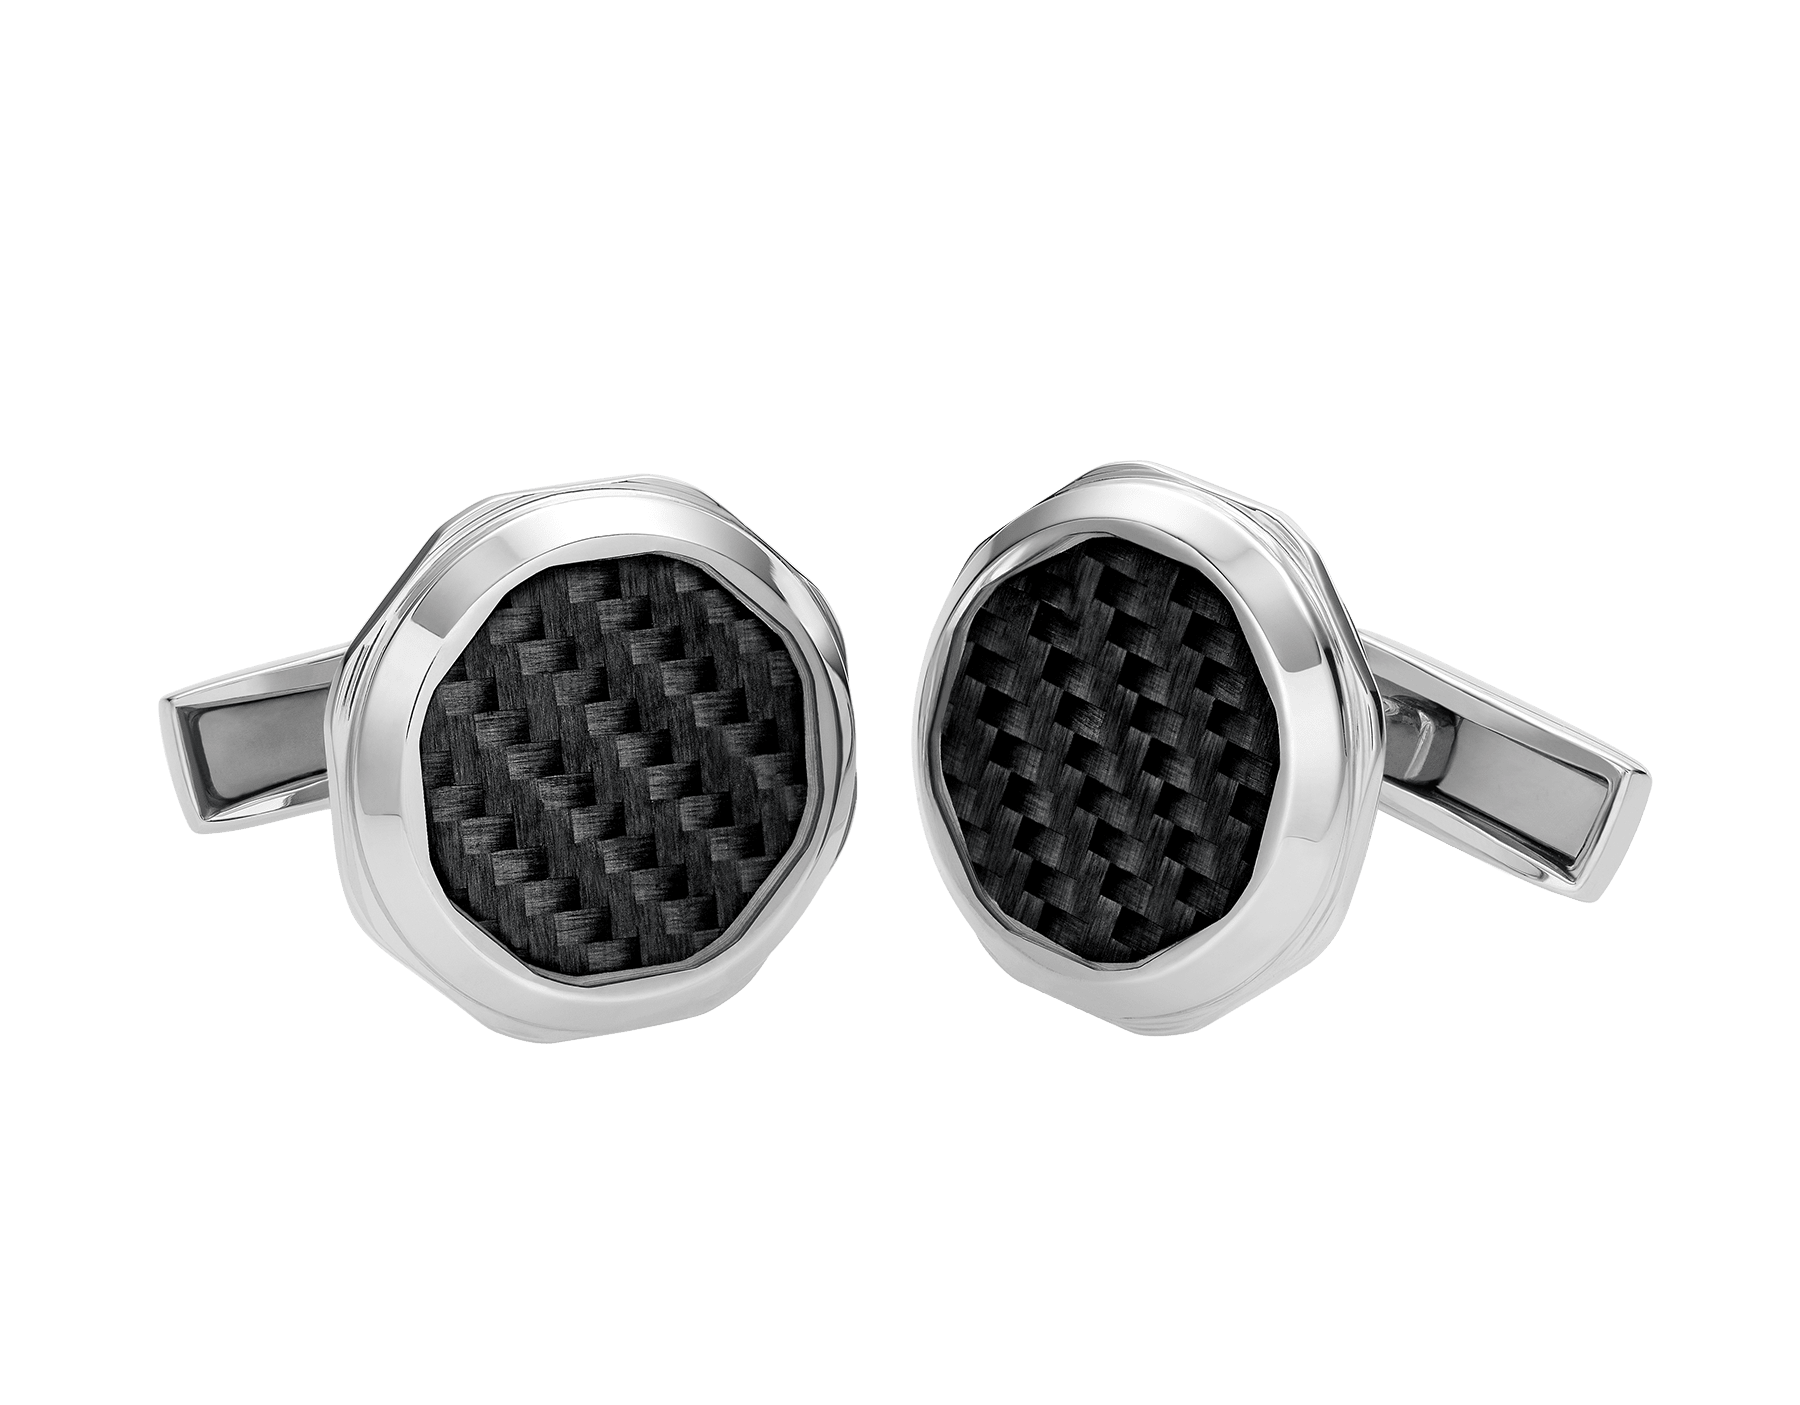 Octo sterling silver cufflinks set with carbon fibre 347971 image 1